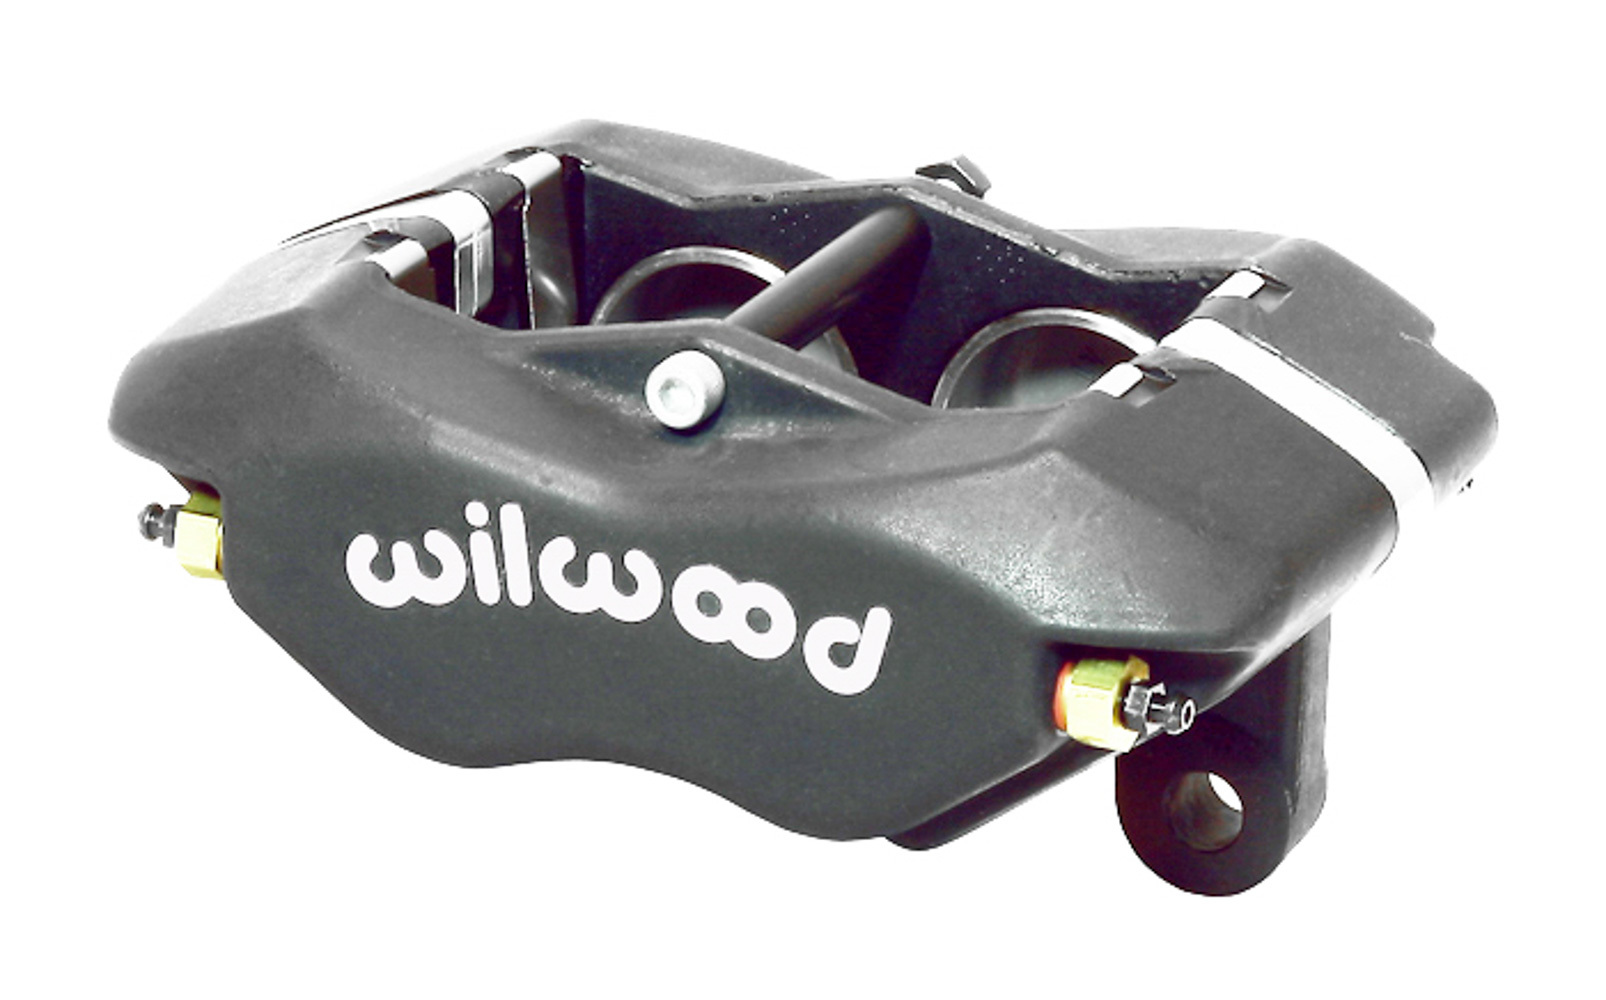 Wilwood 120-15254 Brake Caliper, Dynalite, 4 Piston, Aluminum, Gray Anodized, 12.720 in OD x 1.000 in Thick Rotor, 3.500 in Lug Mount, Each